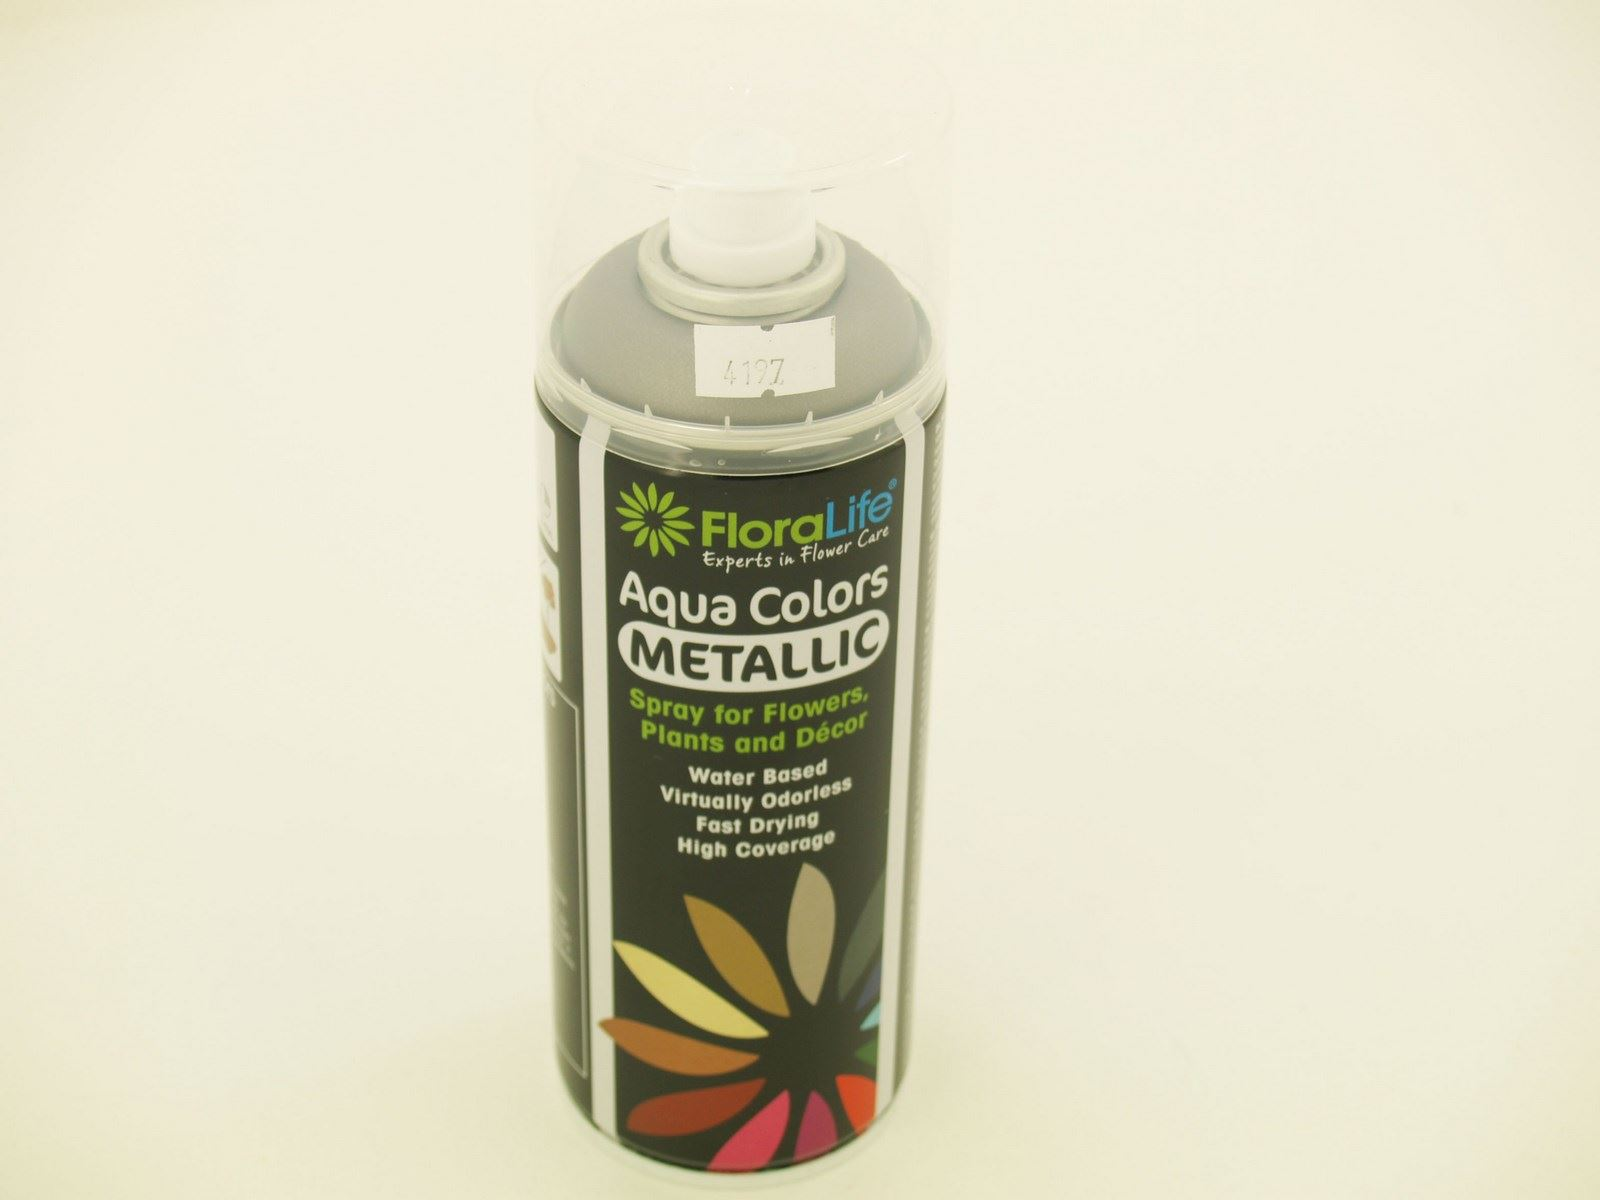 400ml Oasis Water Based Floralife Aqua Metallic Color Spray Paint Ebay